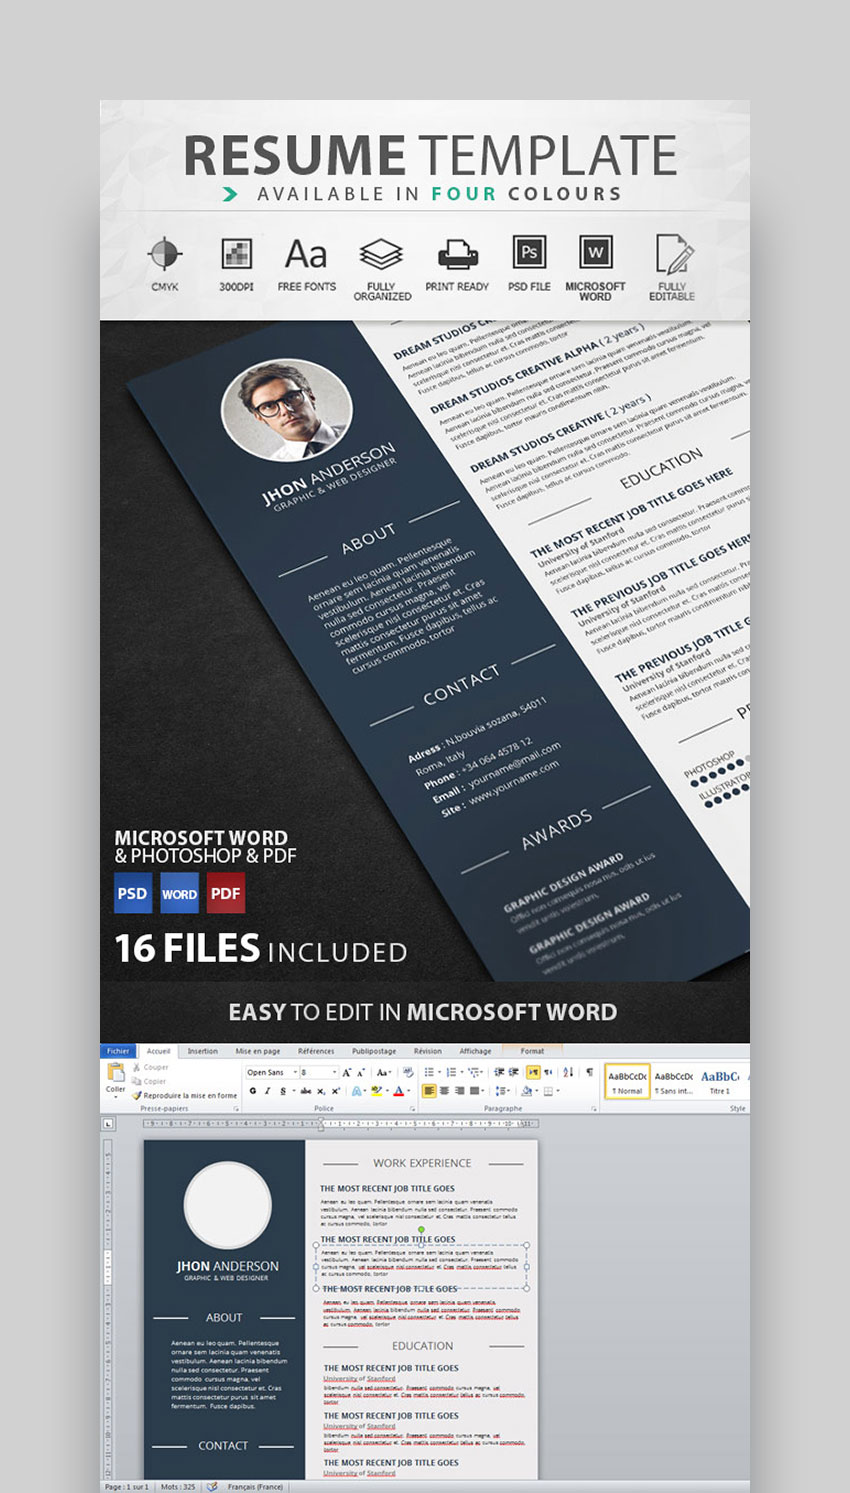 30+ Creative Infographic Resume Templates (Designs for 2019) on